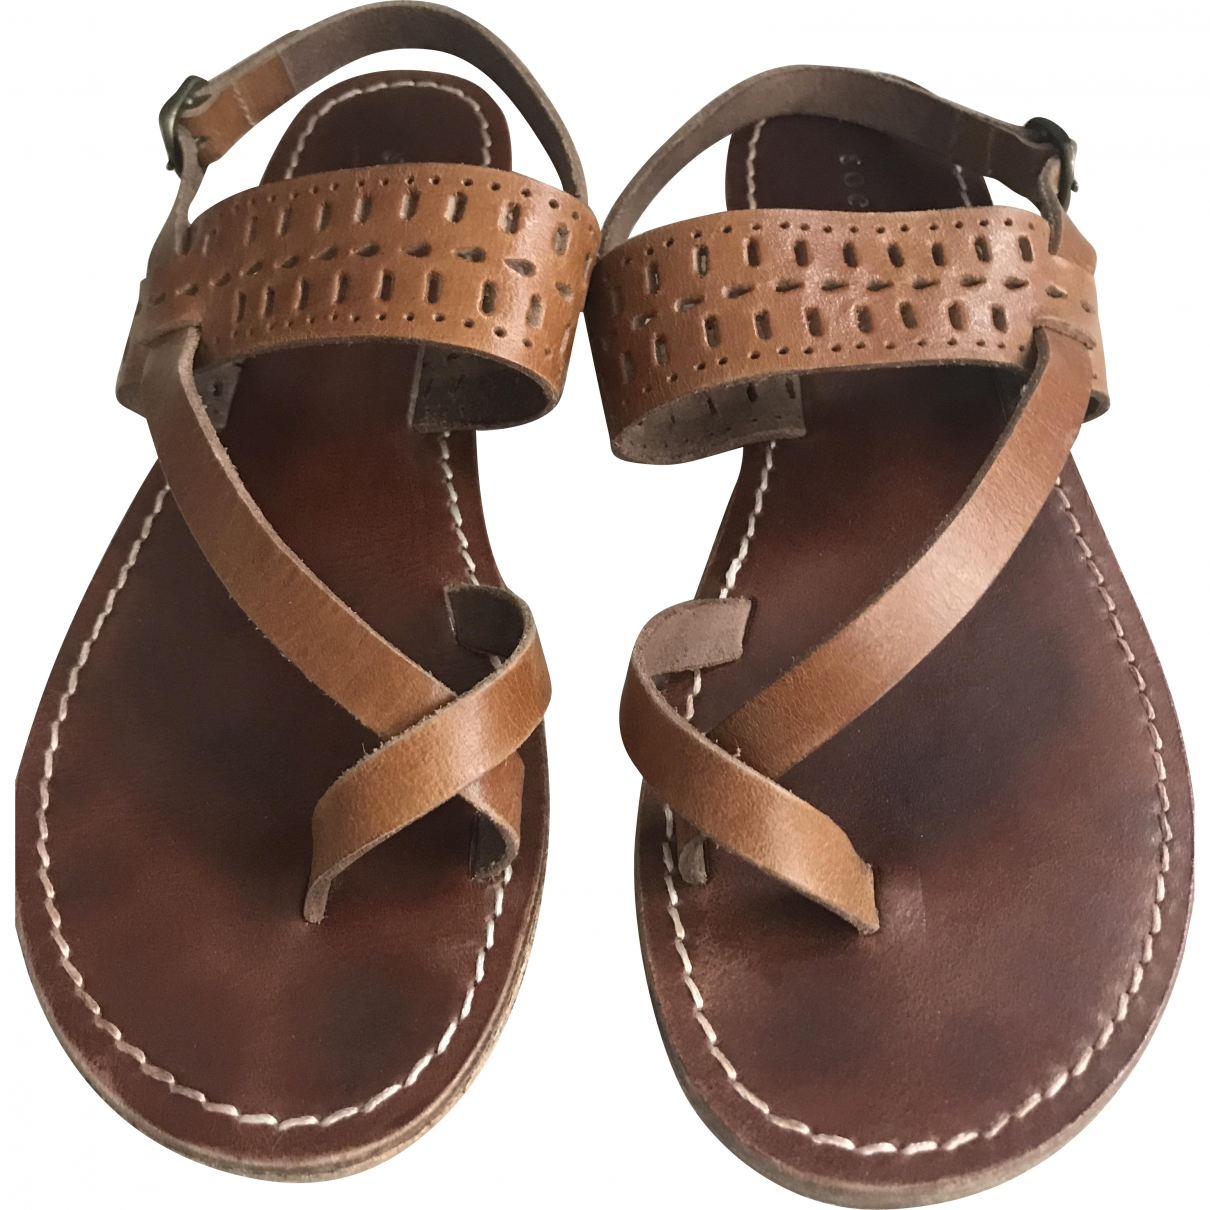 Soeur \N Brown Leather Sandals for Women 39 EU